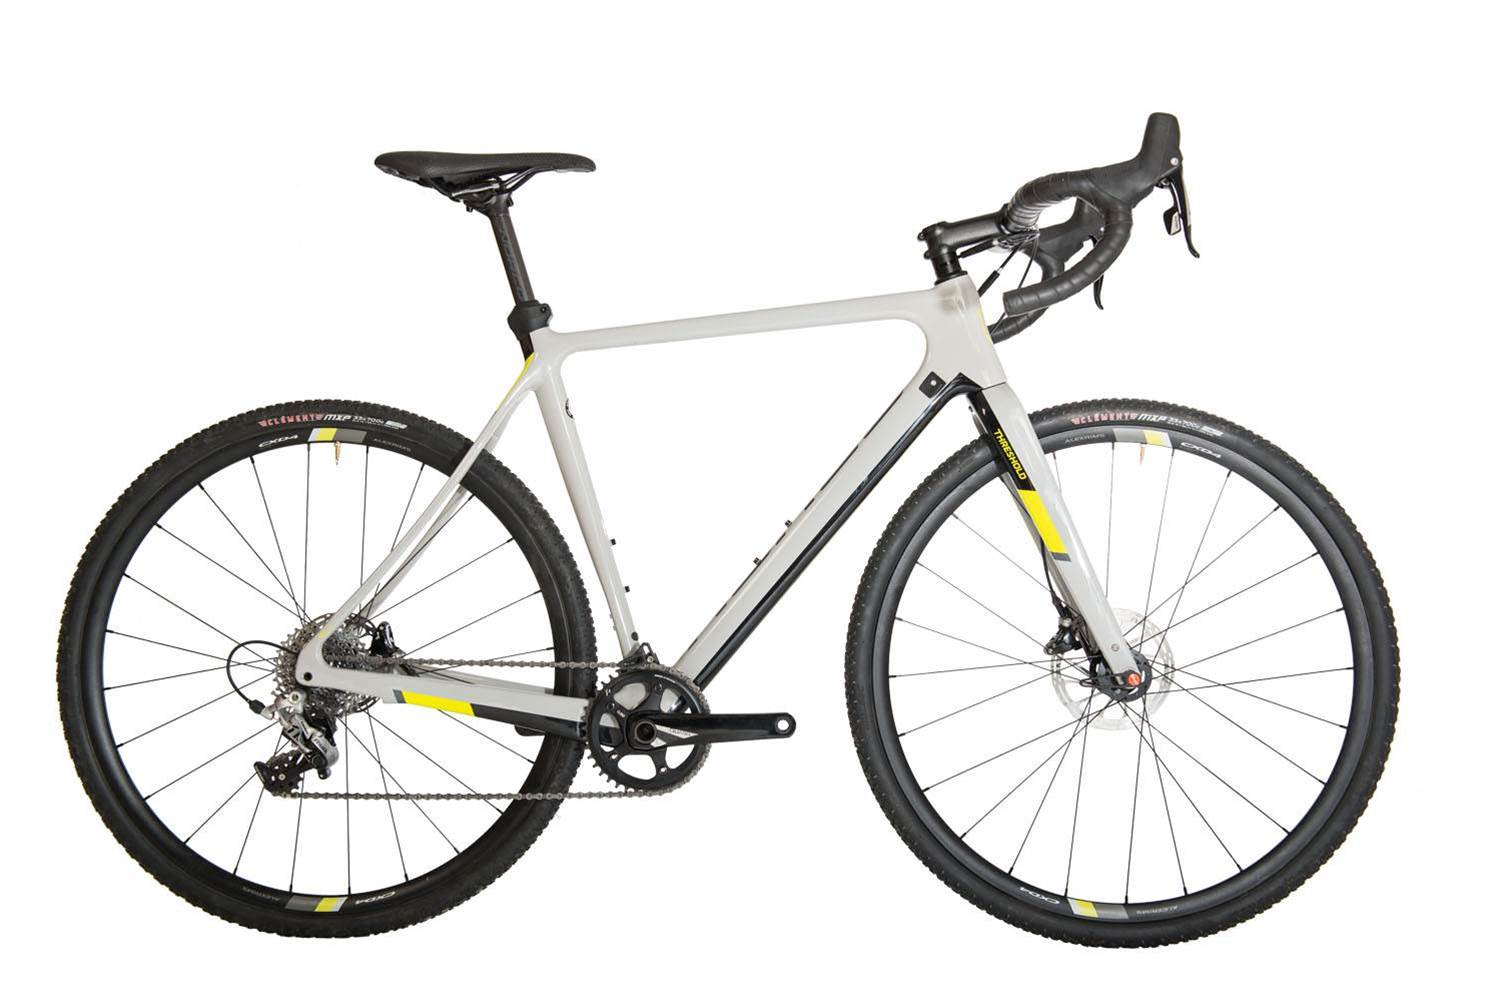 BUYER'S GUIDE: Cyclocross bikes